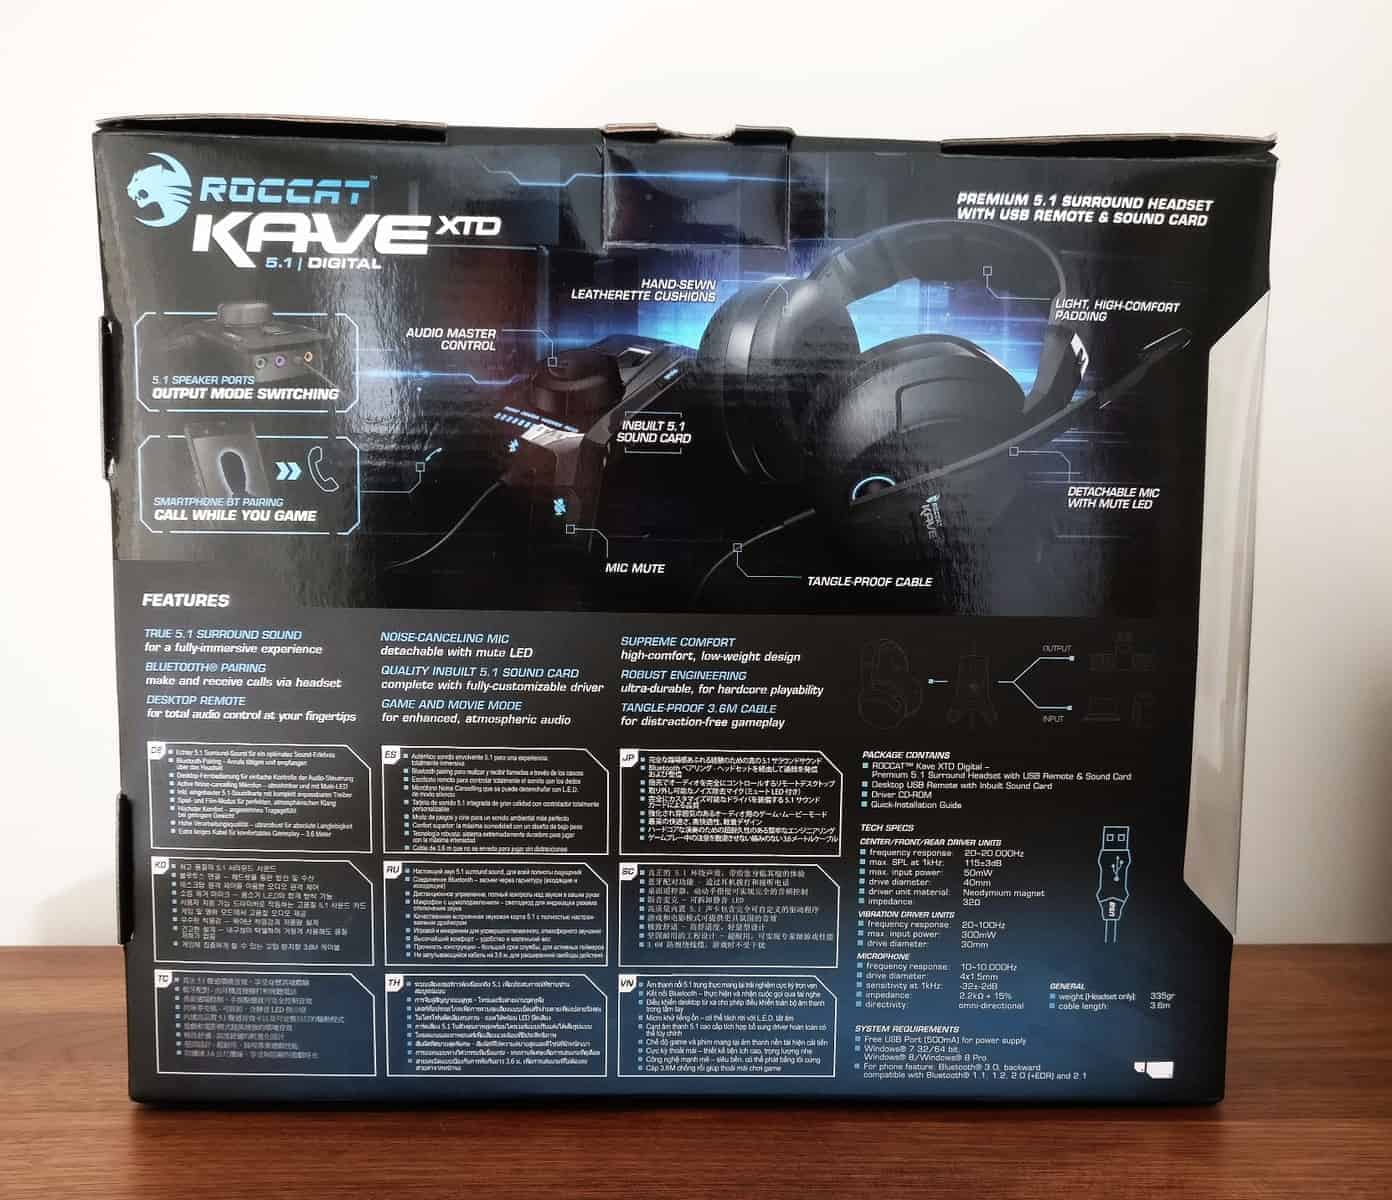 roccat-kave-photos20 Roccat Kave XTD 5.1 Digital Gaming Headset Review